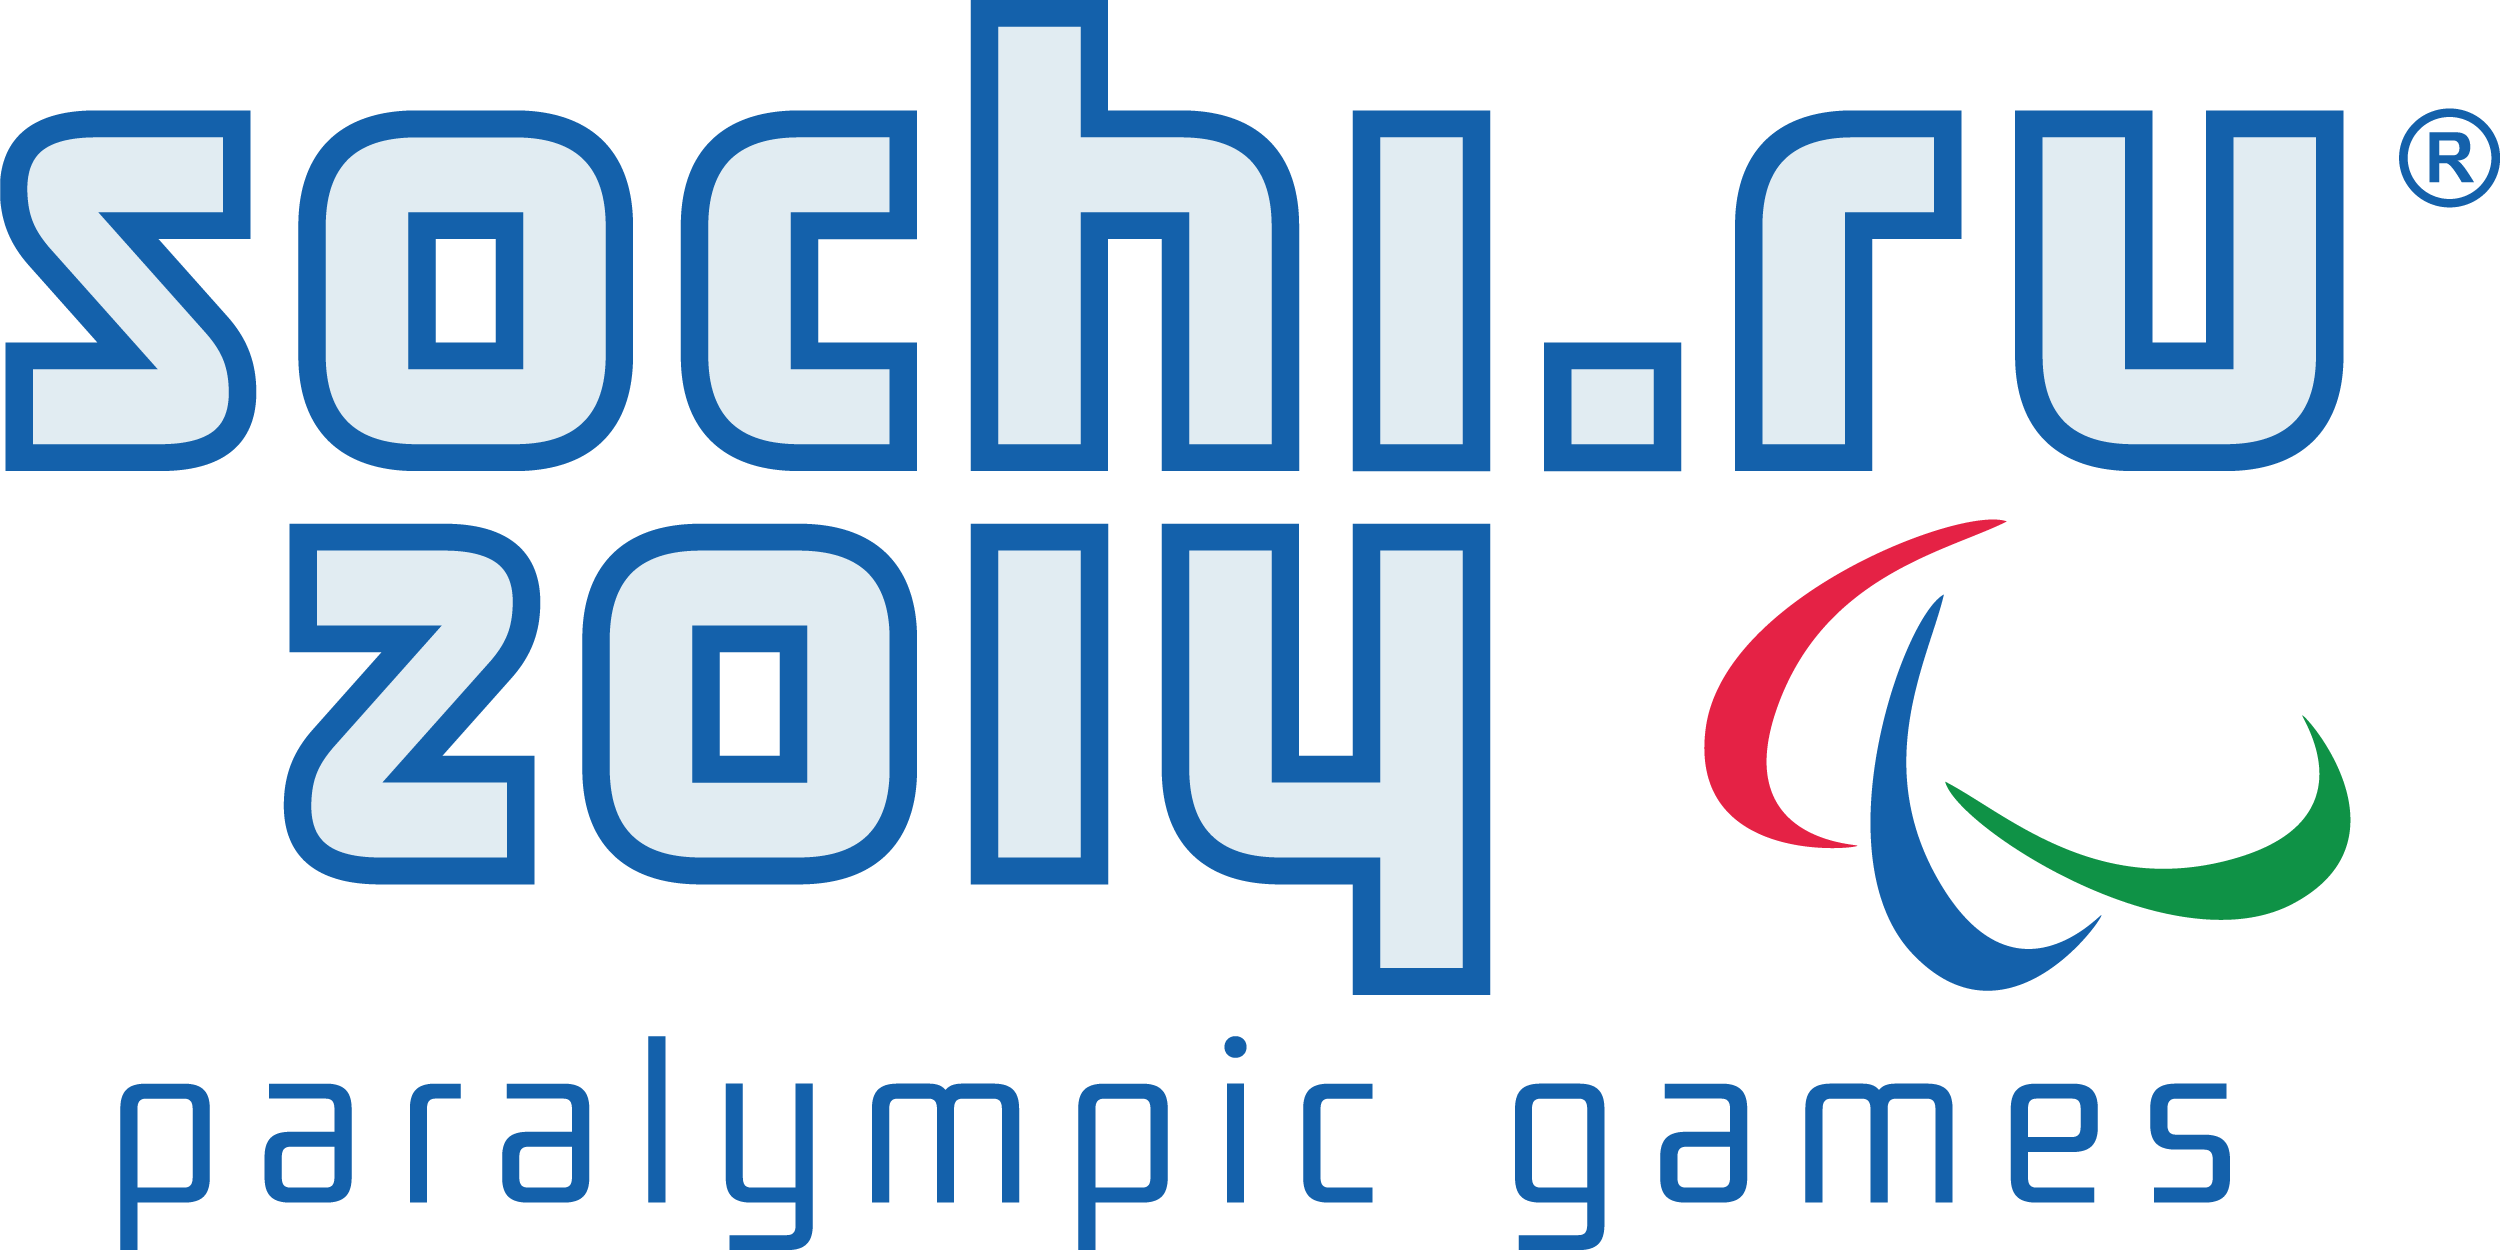 Vector emblem of the Paralympic games in Sochi 2014